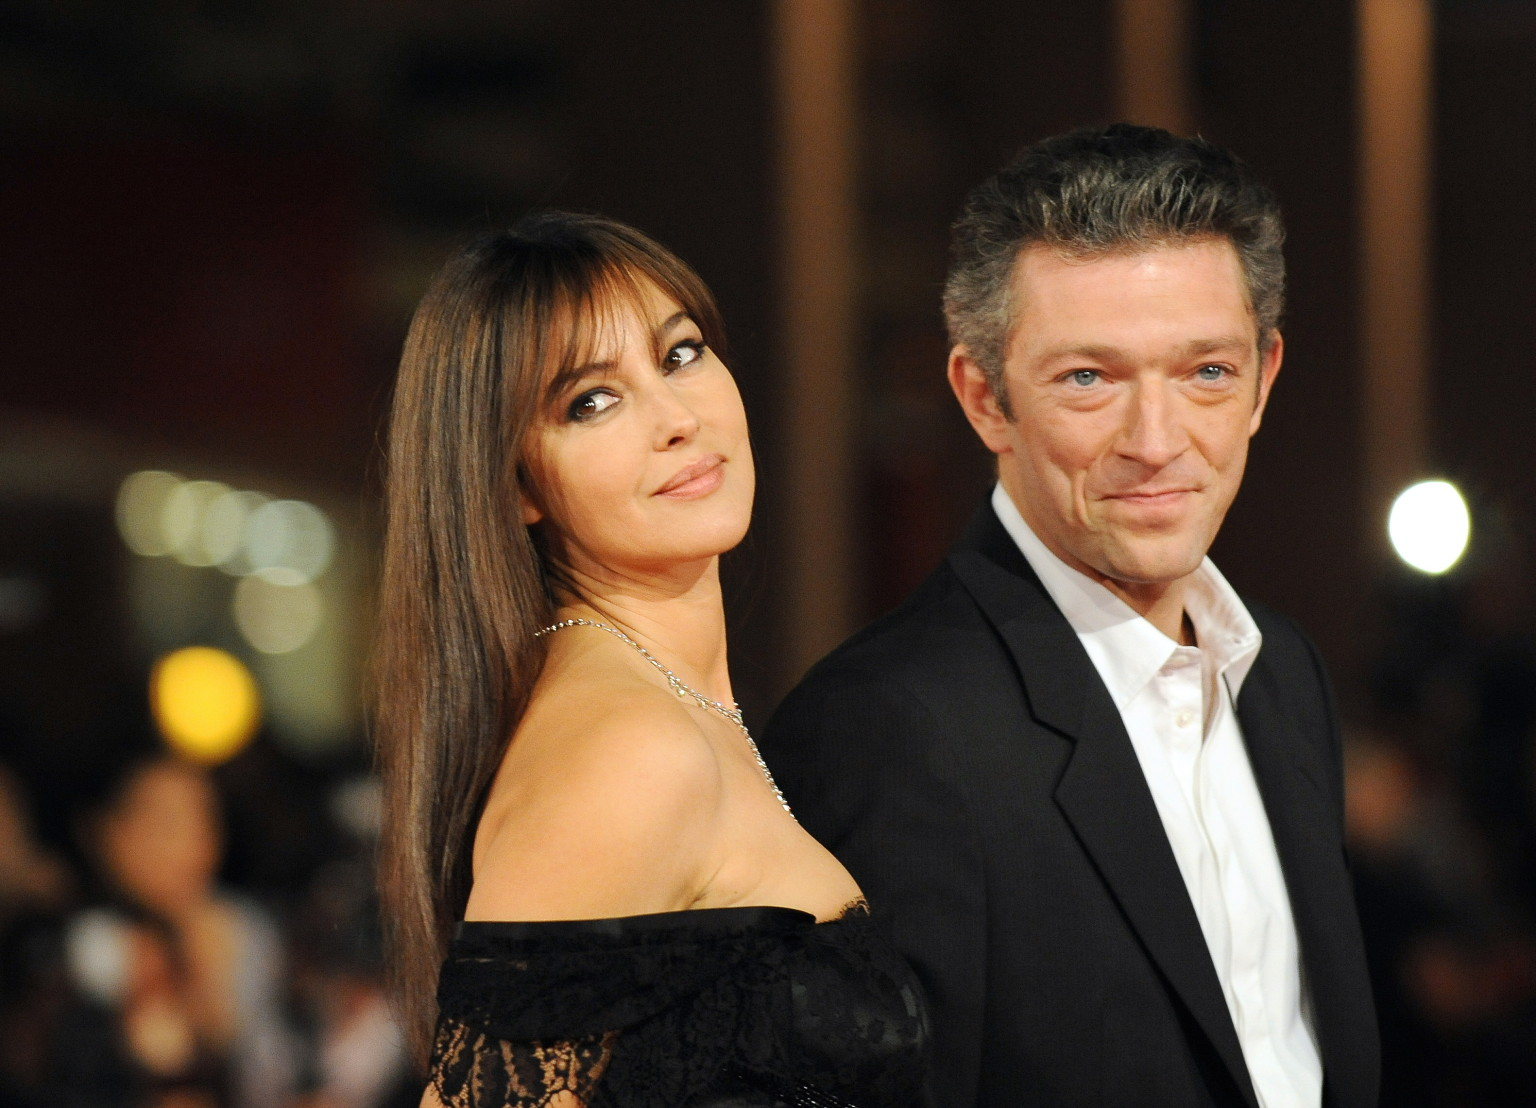 Family photo of the actor, married to Monica Bellucci, famous for Ocean